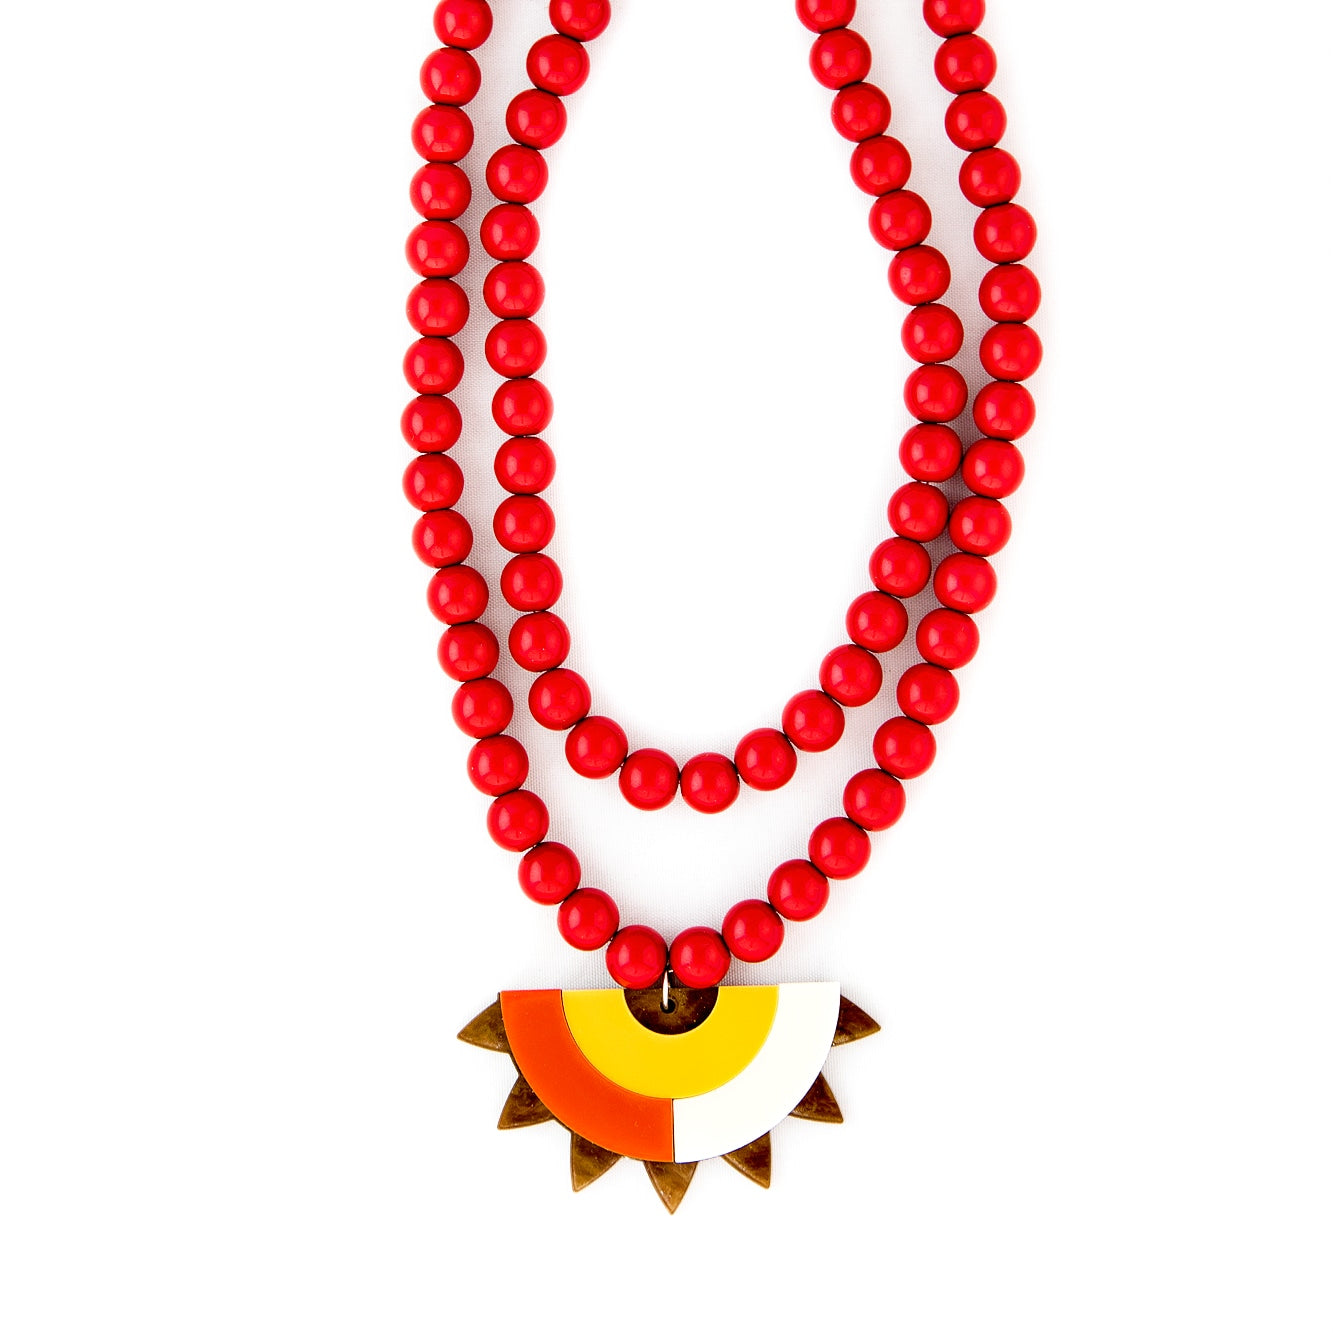 The Sunshine necklace - Sofi Moukidou